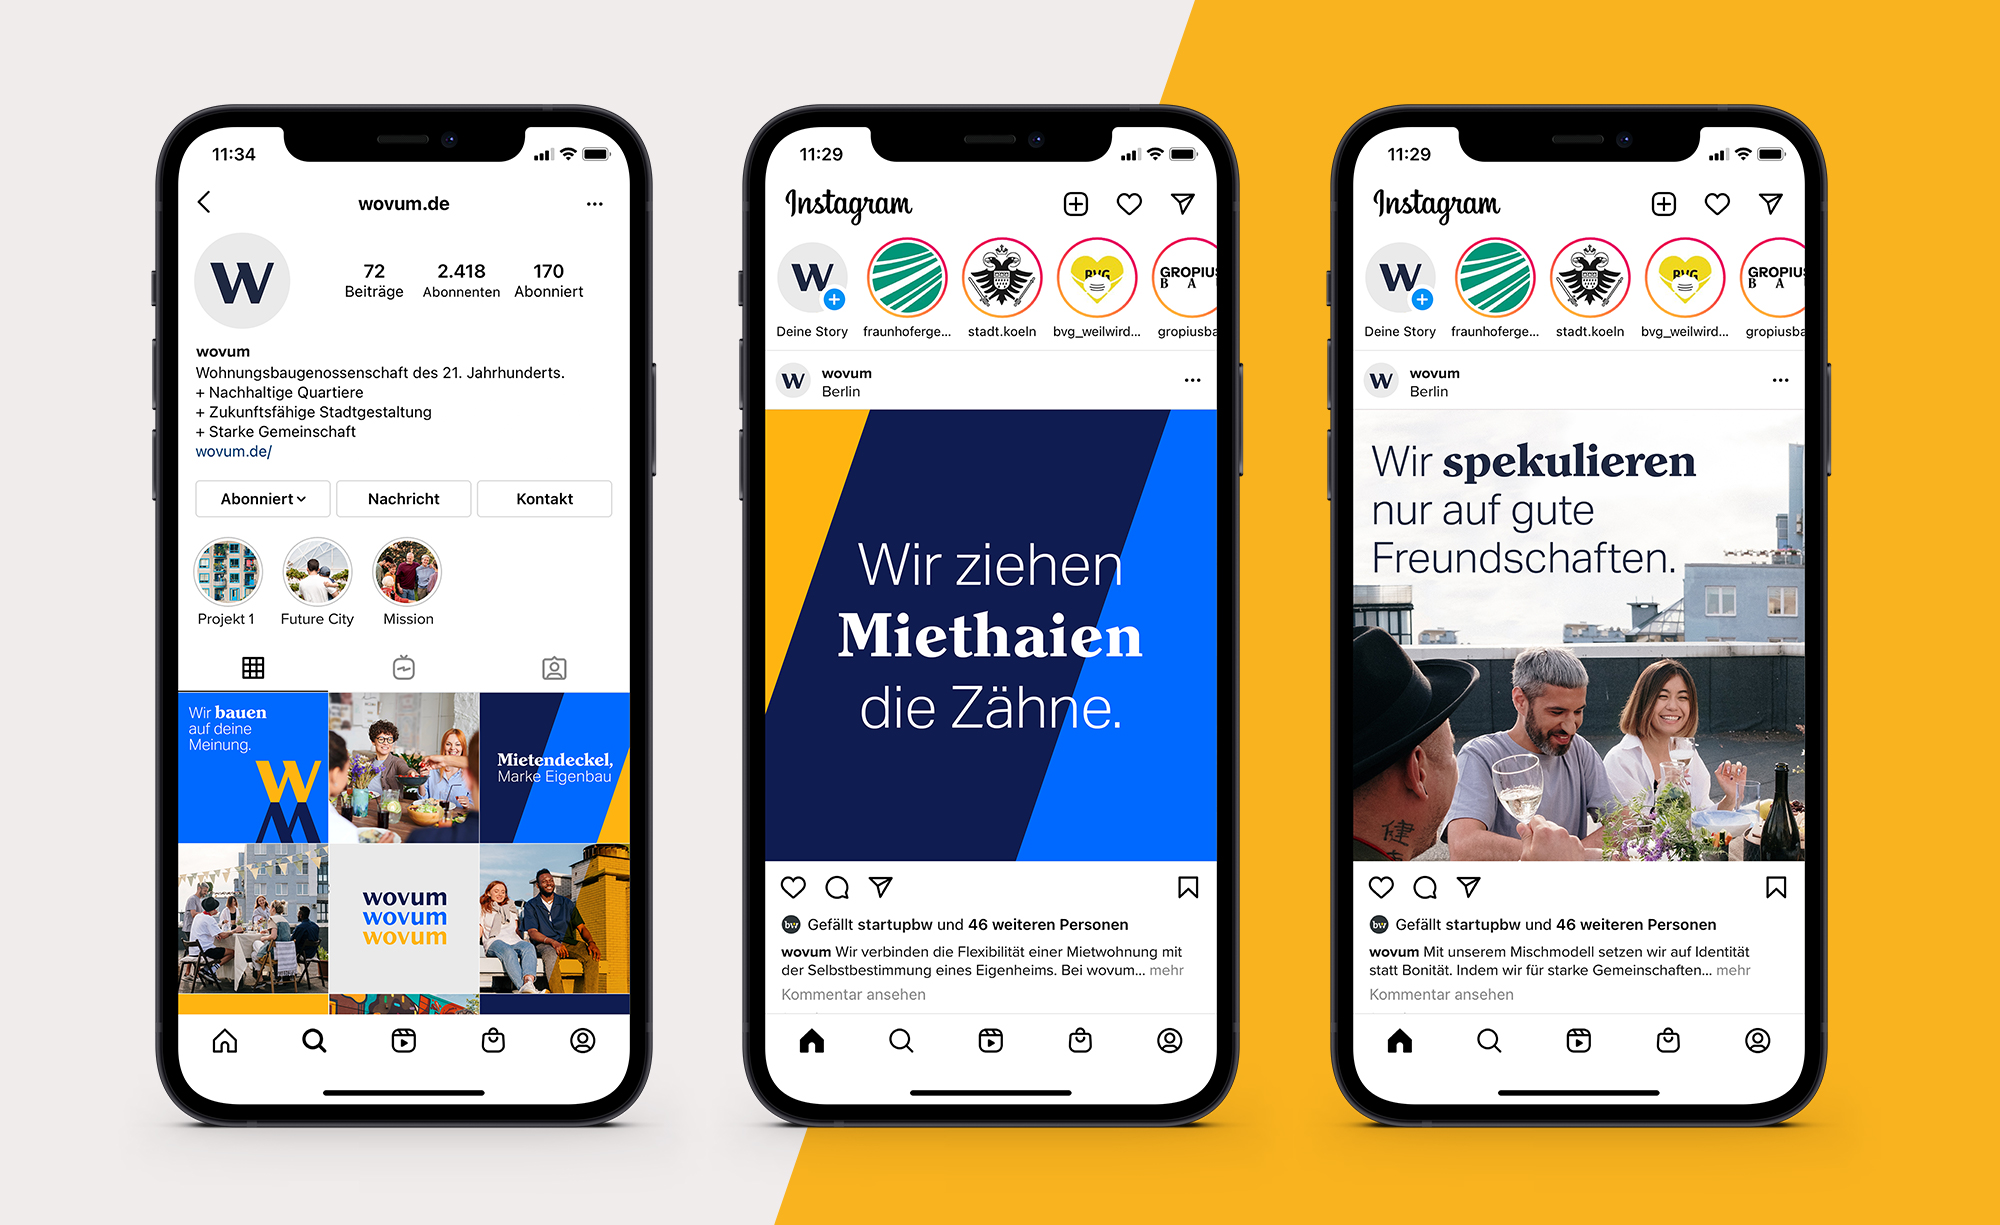 The image shows three phone mockups showcasing the social media part of the wovum communication strategy.